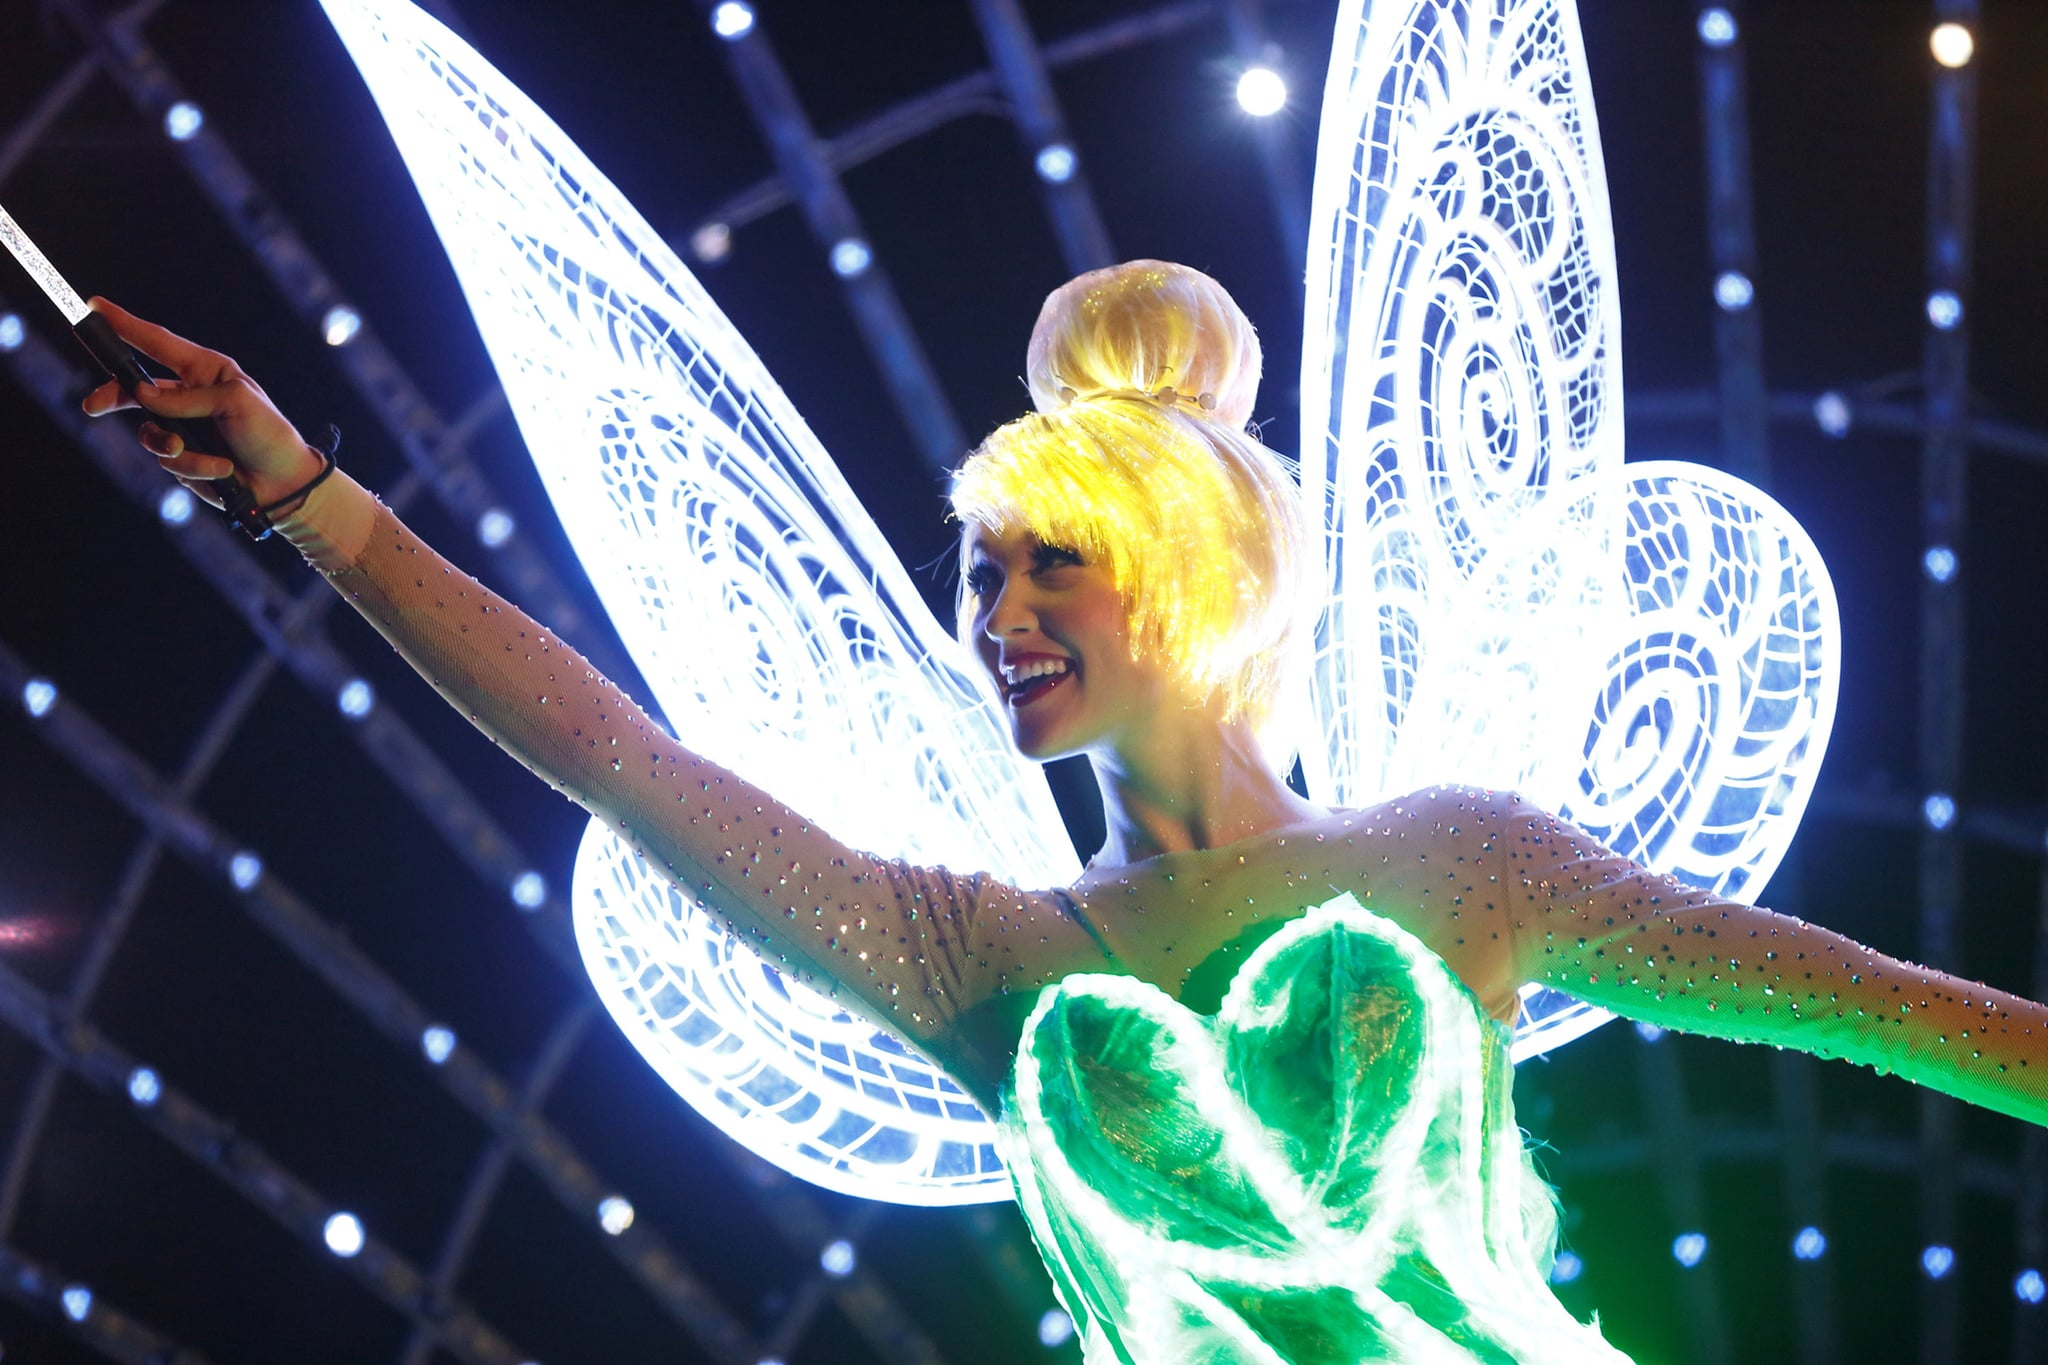 9 Facts About Tinker Bell's Job at Disney World That Will Legit Blow Your Mind